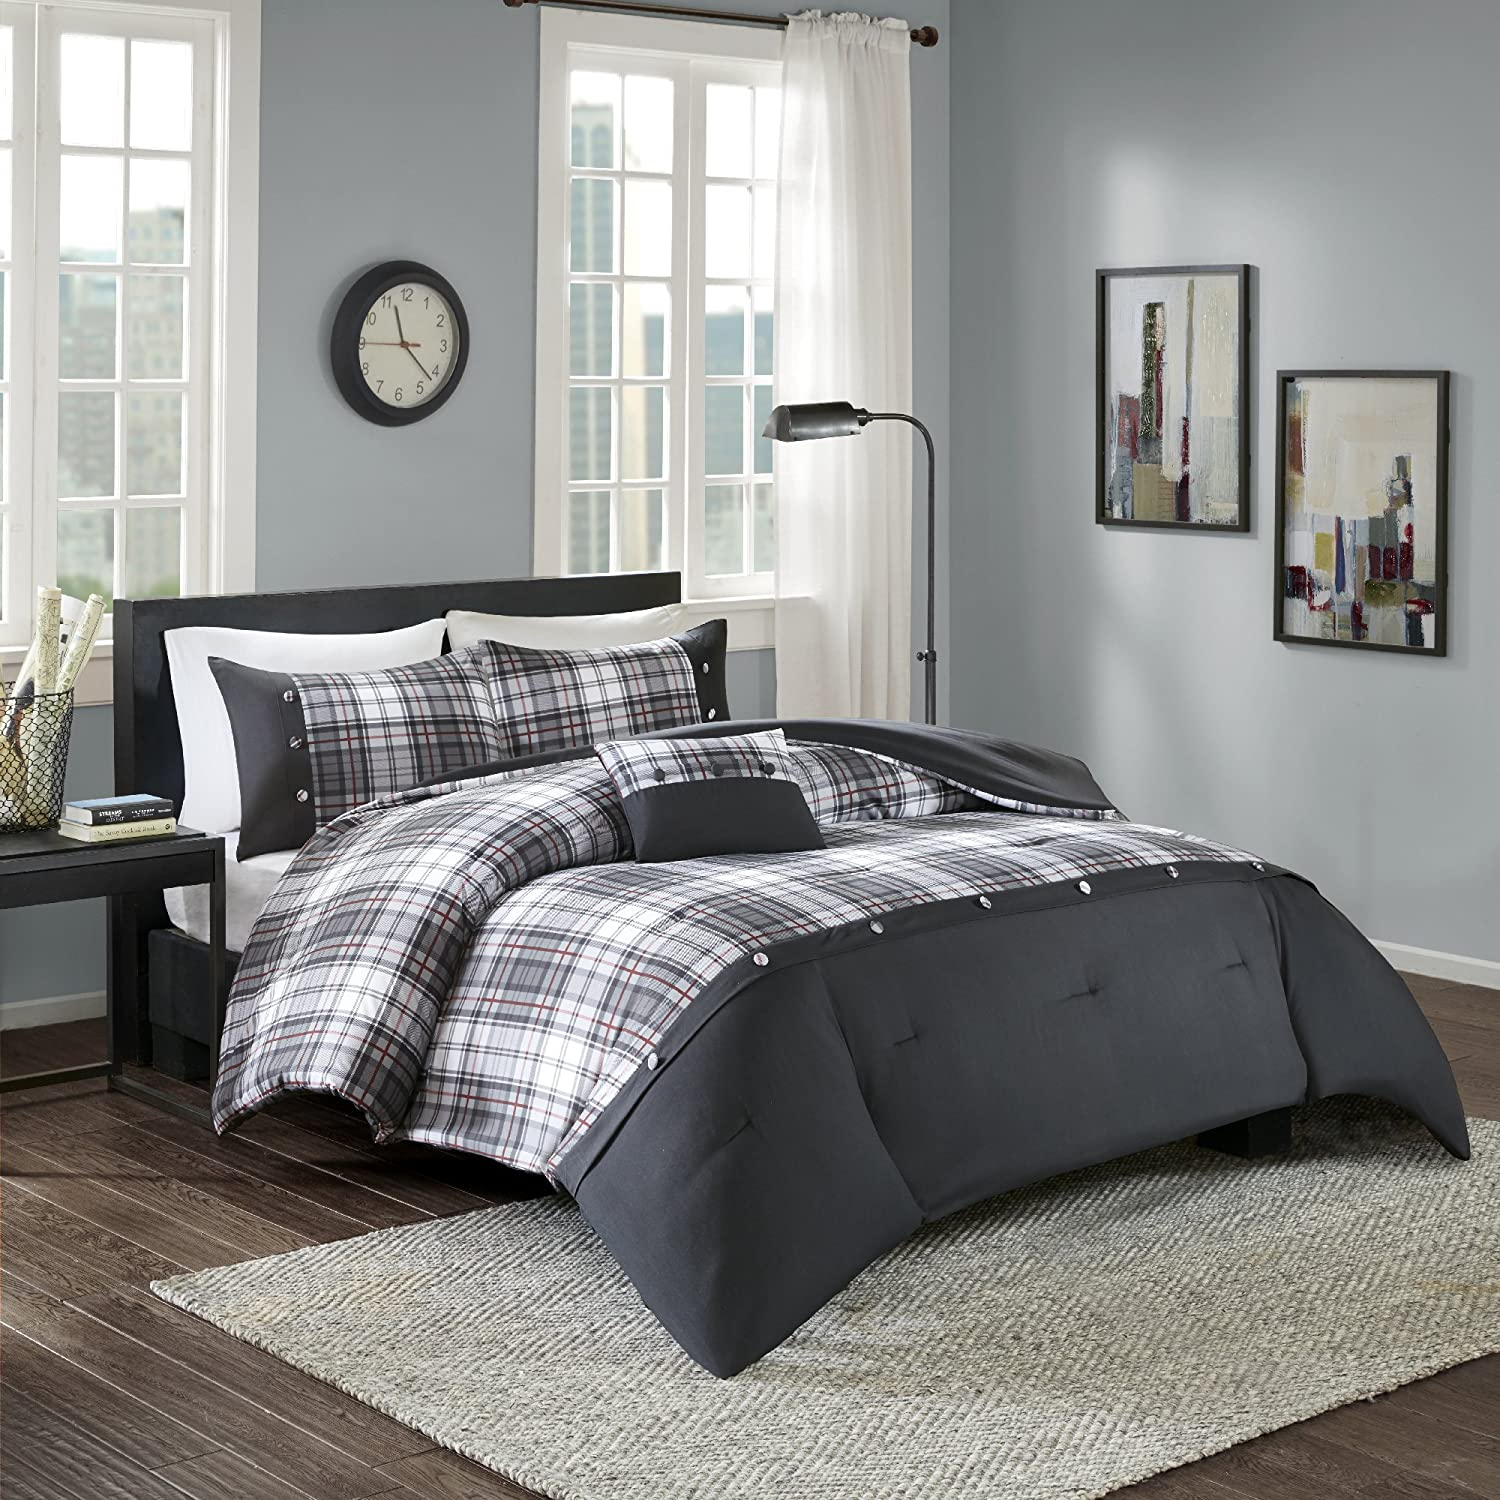 Comfort Spaces - Asher Comforter Set - 3 Piece